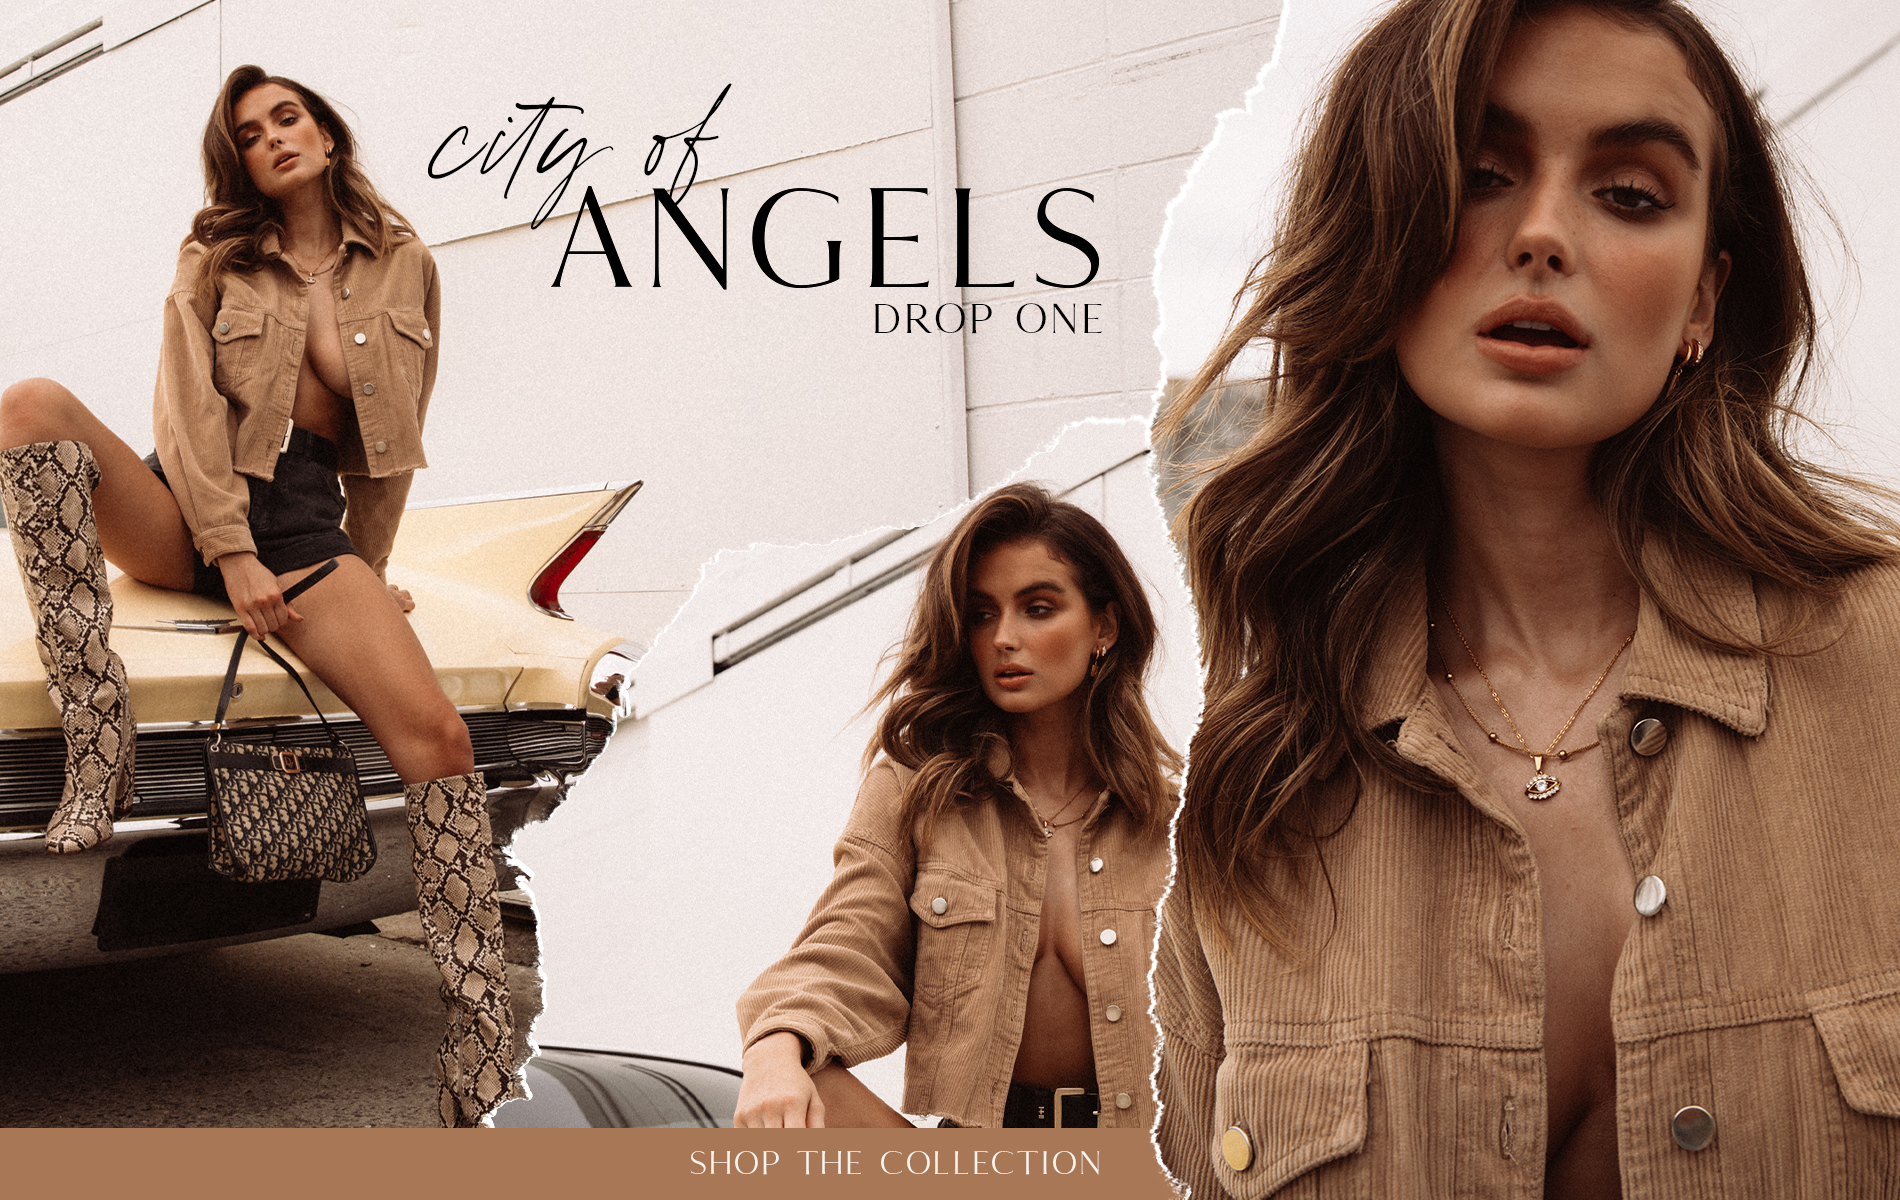 CITY OF ANGELS WEB BANNER (2).png